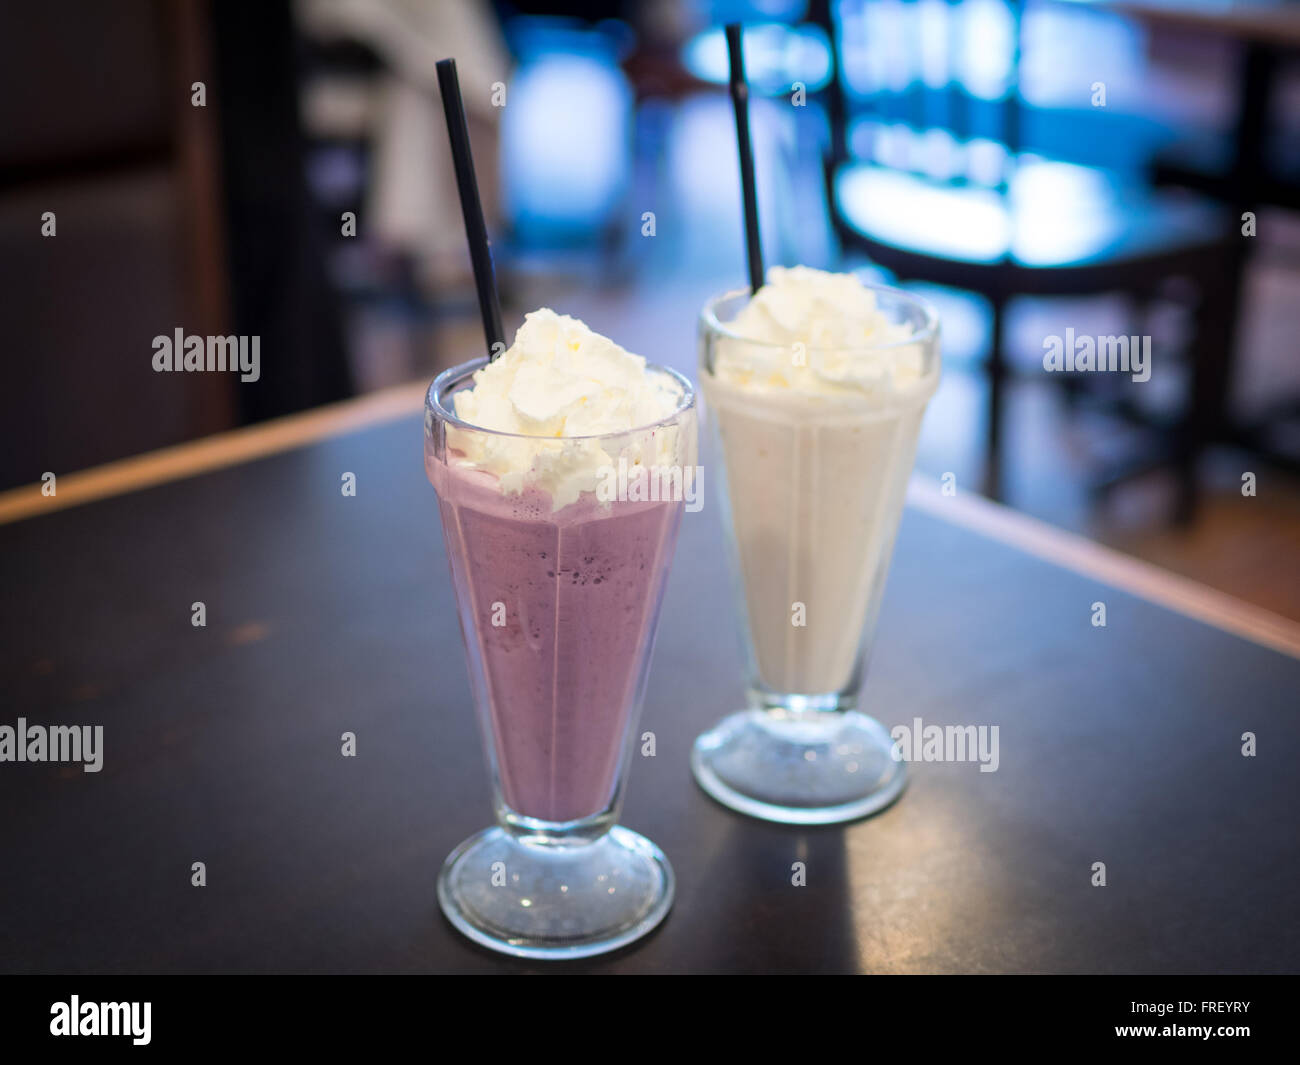 A mixed berry milkshake and chai tea milkshake from Urban Diner in Edmonton, Alberta, Canada. - Stock Image